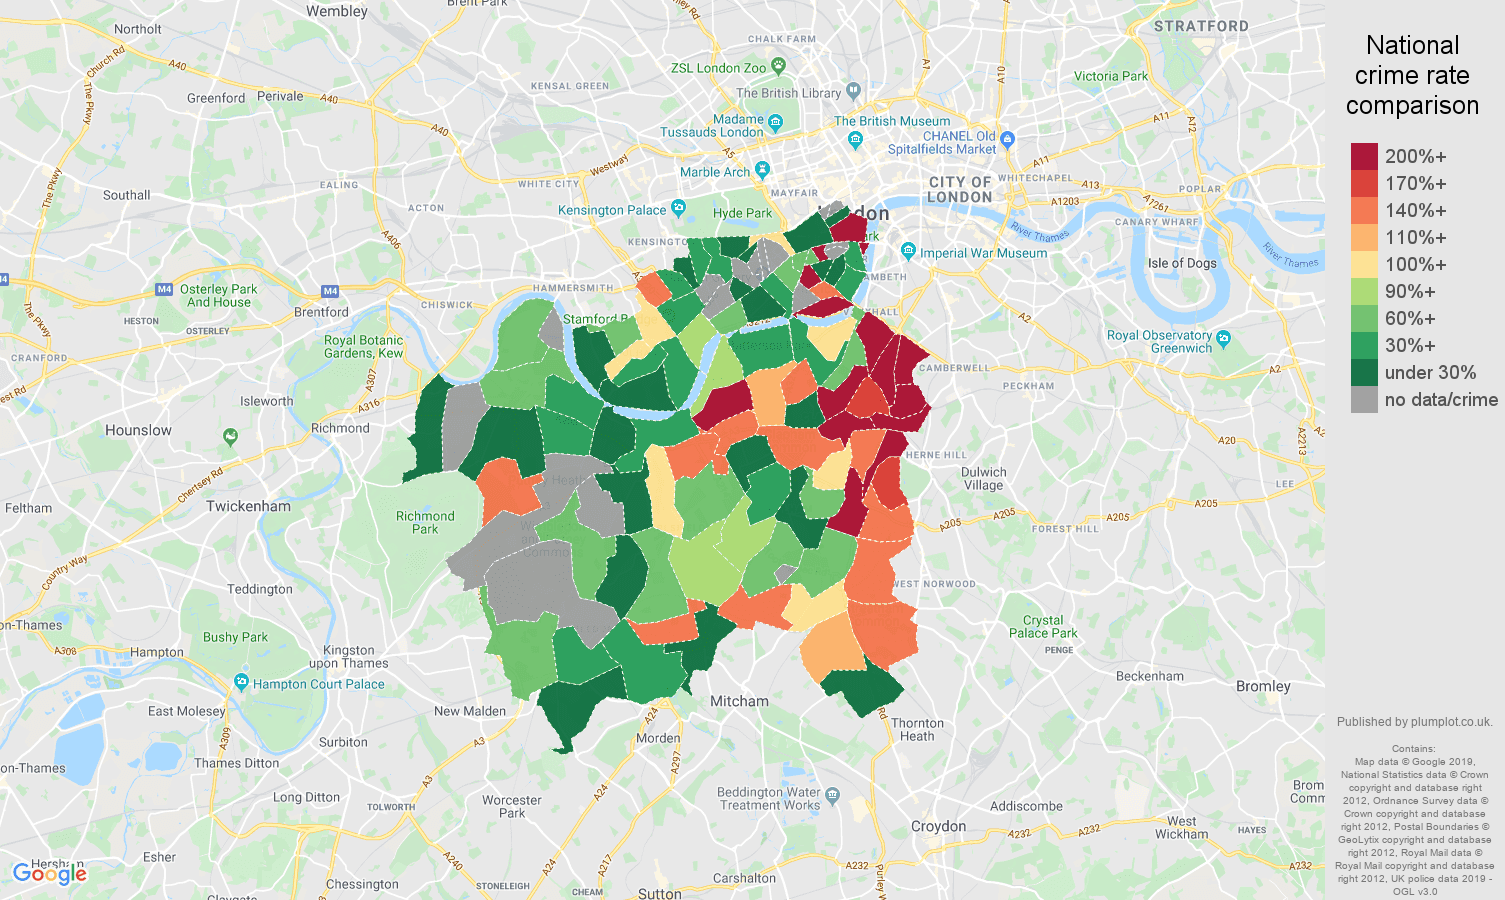 South West London possession of weapons crime rate comparison map